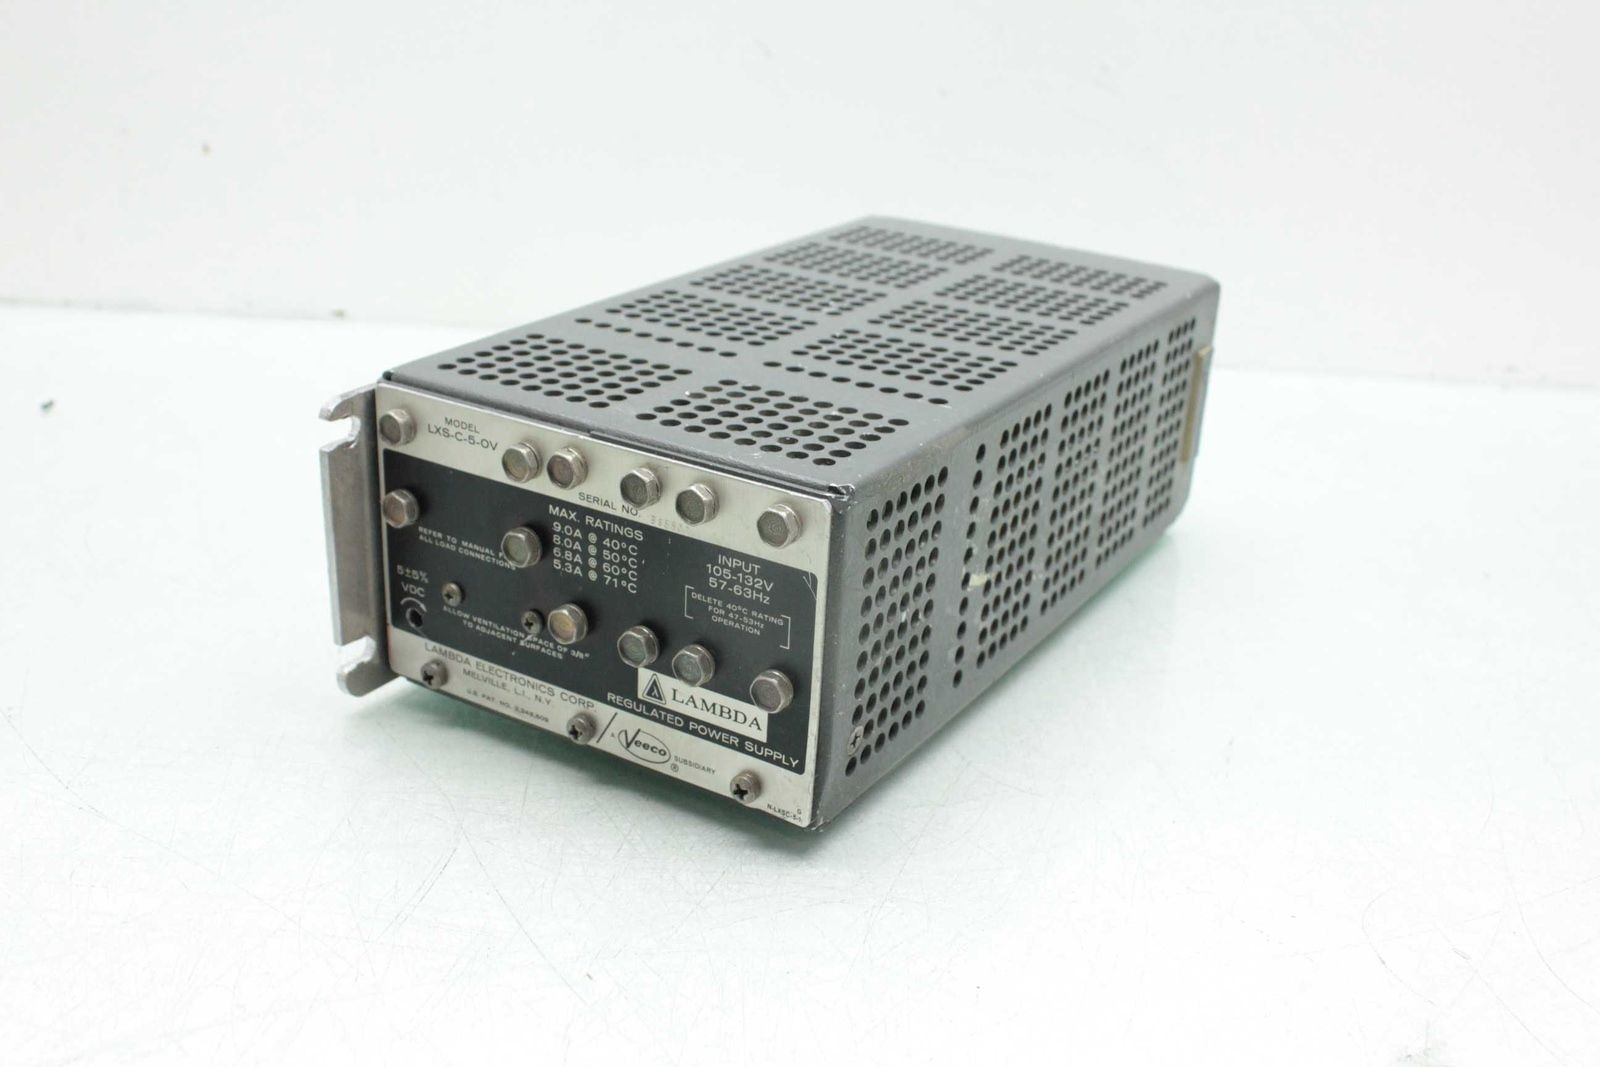 Lambda-LXS-C-5-OV-Chassis-Mount-Regulated-Power-Supply-Input-105-132V-57-63Hz-Used-183253409567